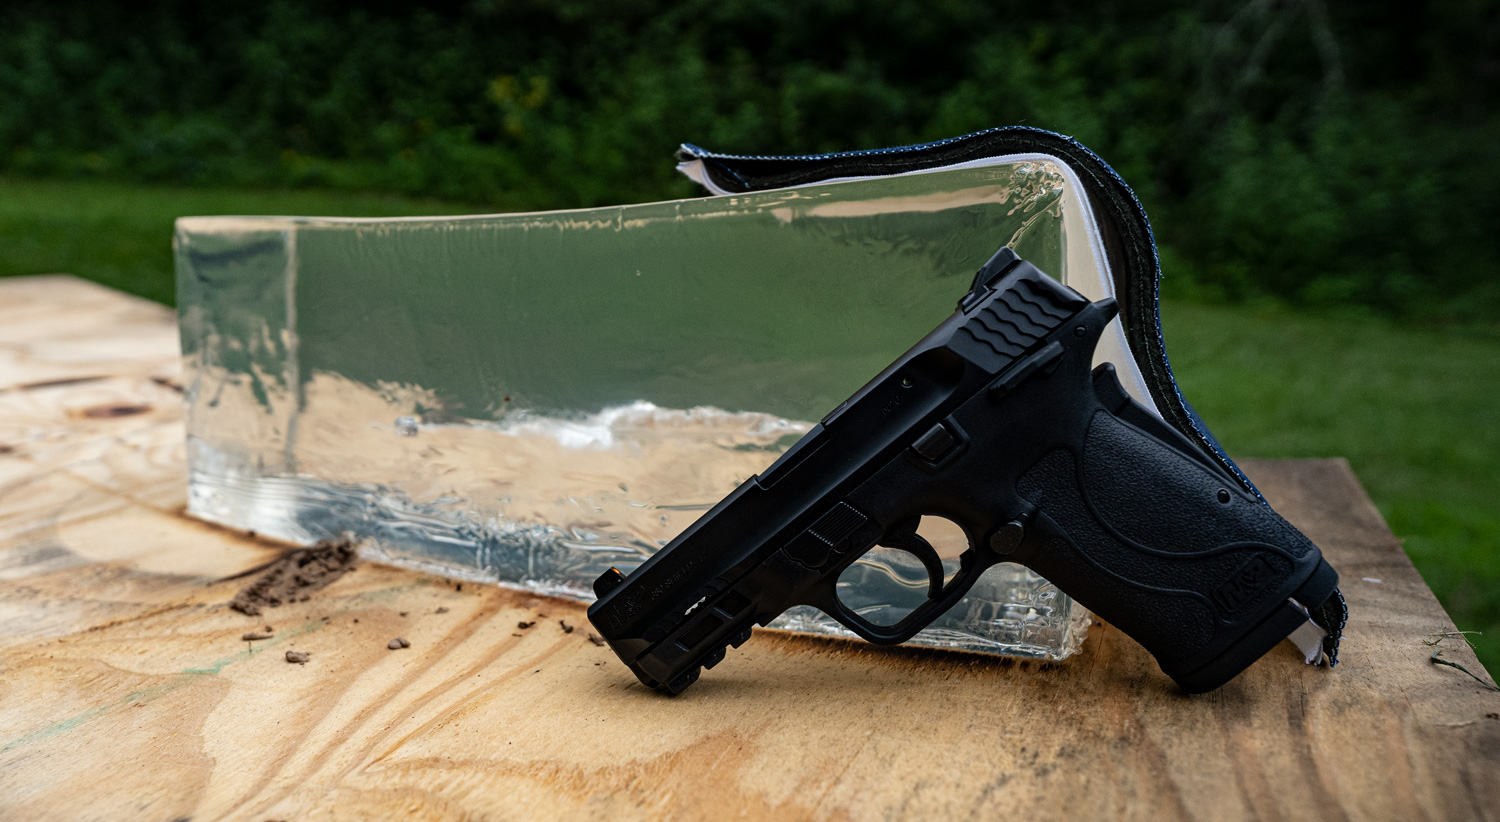 a good first handgun with ballistic gelatin